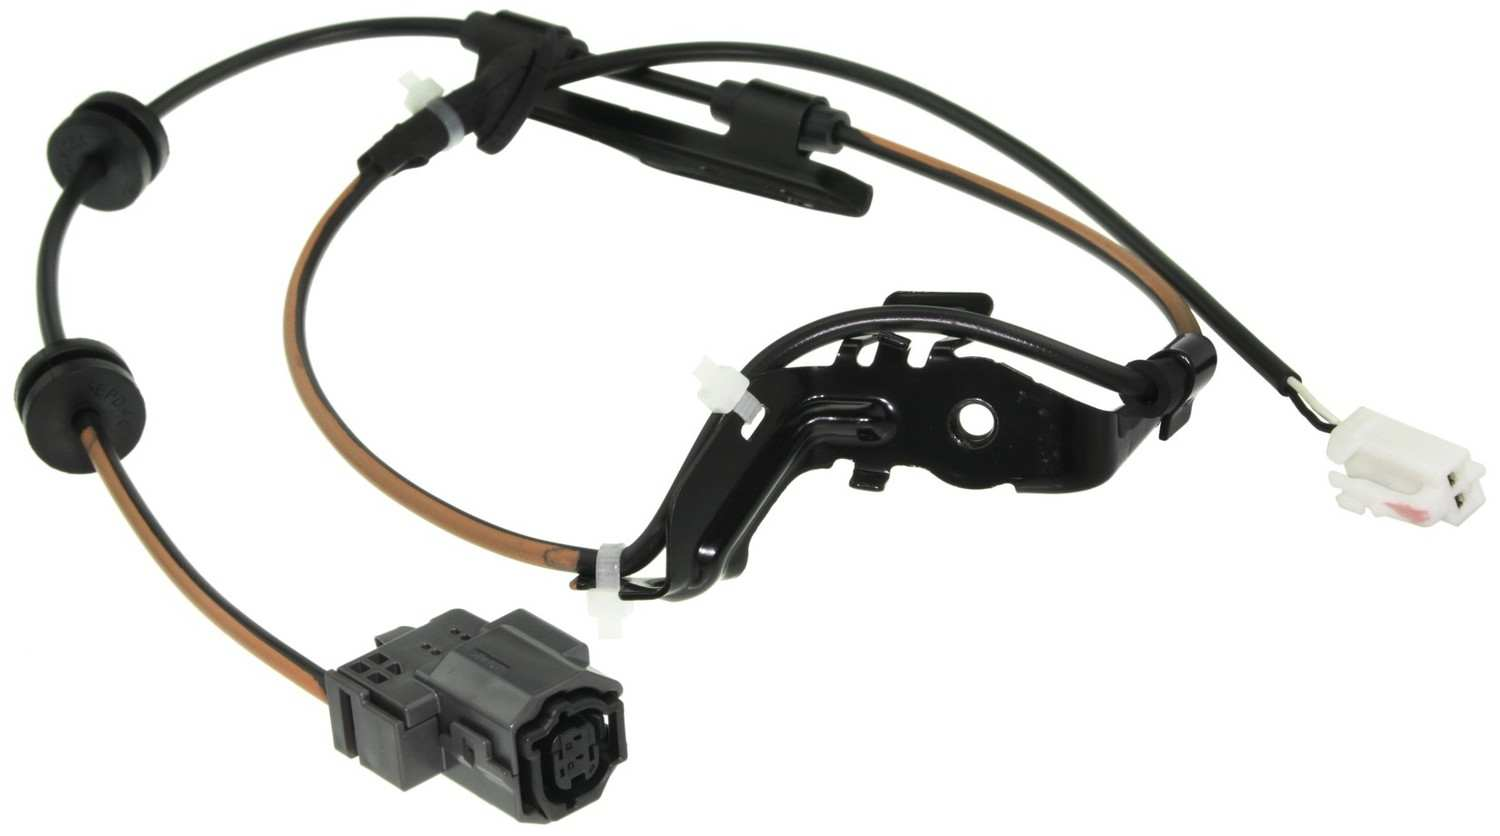 hight resolution of abs wire harness replace on 2008 toyota prius 45 wiring diagram images wiring diagrams 15773652 wiring harness location of abs 06 kia sportage starter